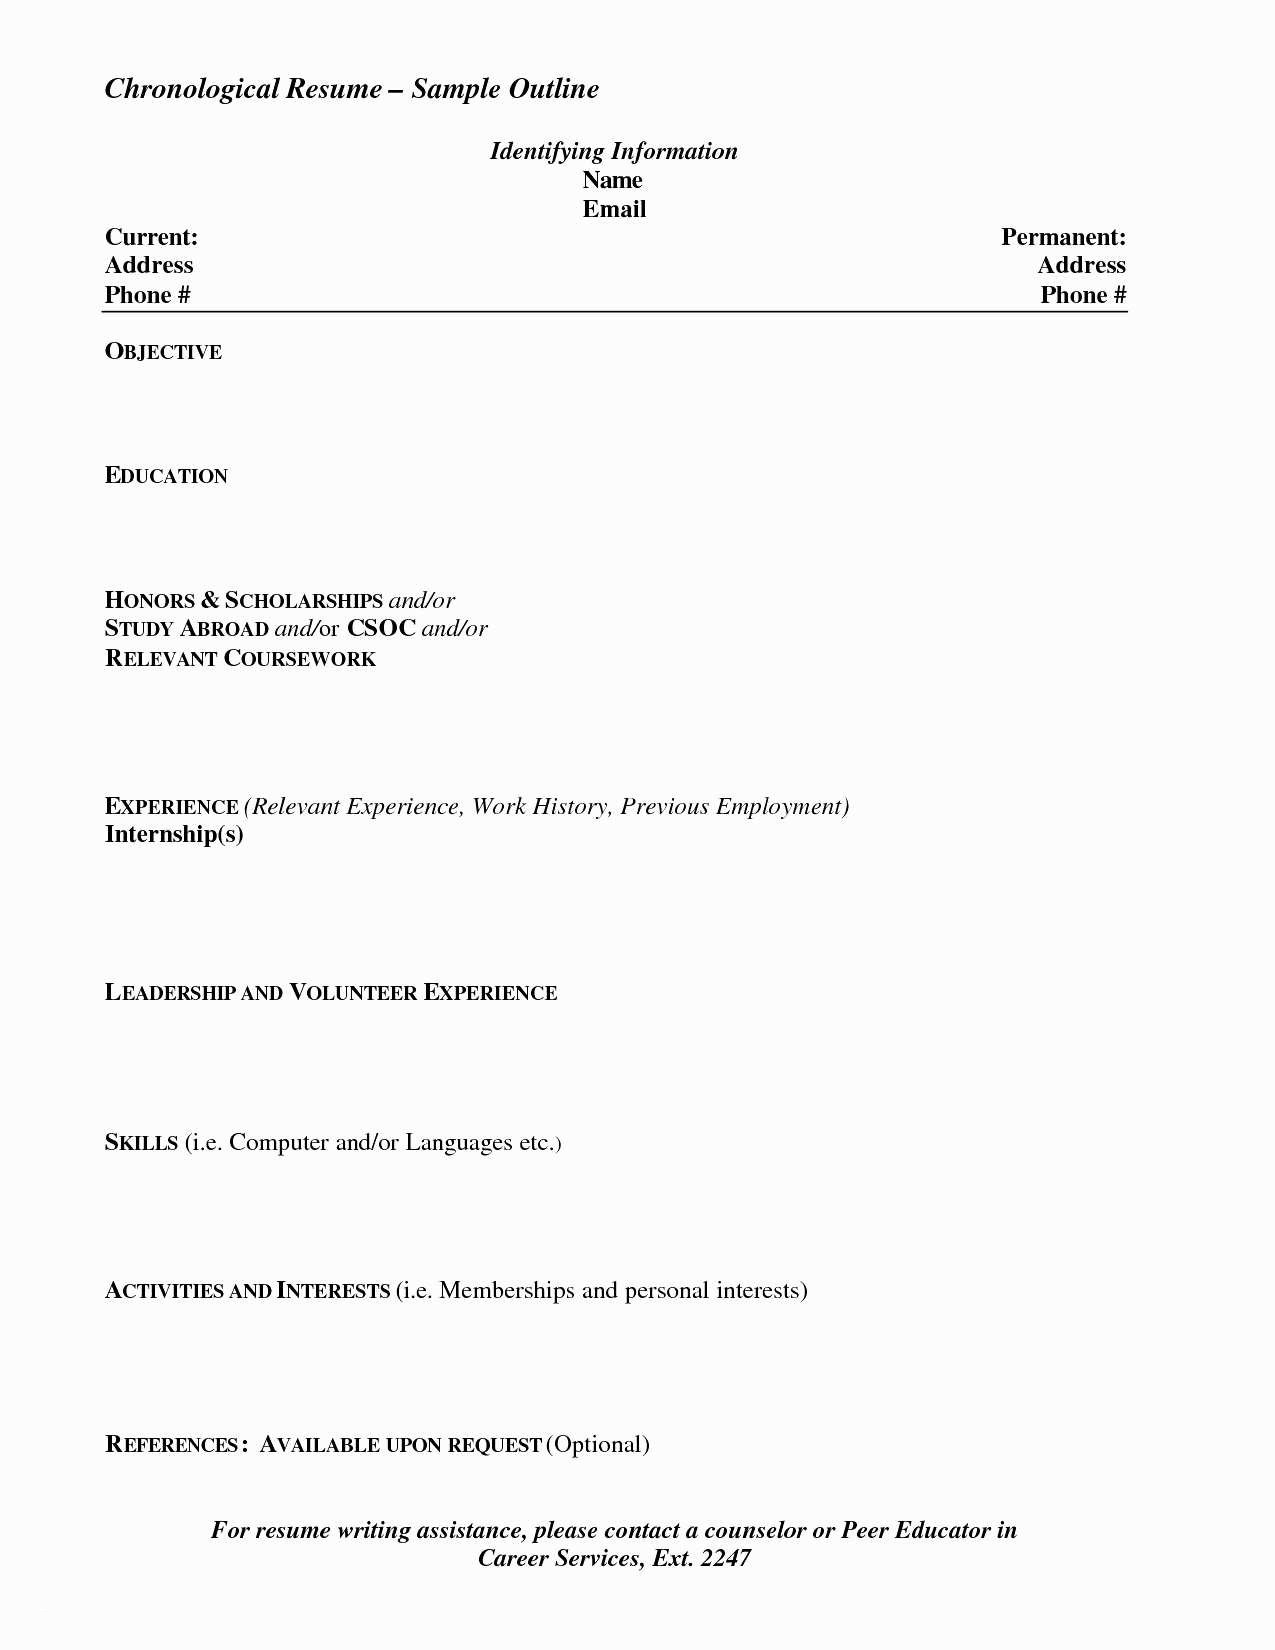 Creating A Good Resume - Resume format Examples Awesome Cfo Resume Examples Resume Writing